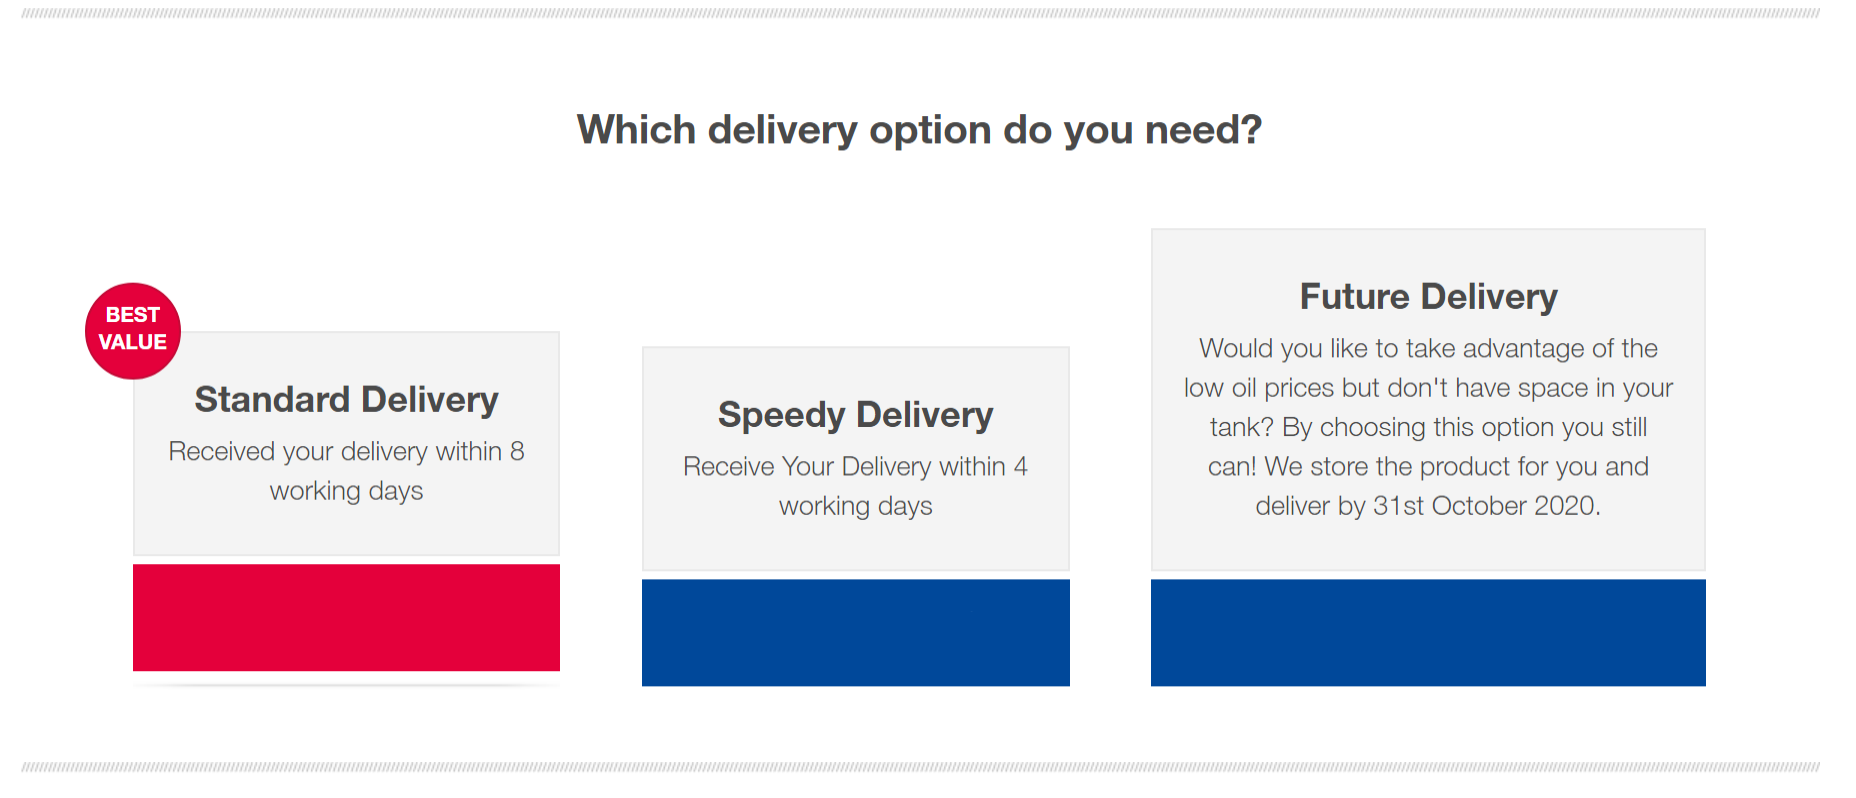 Delivery options including new future delivery